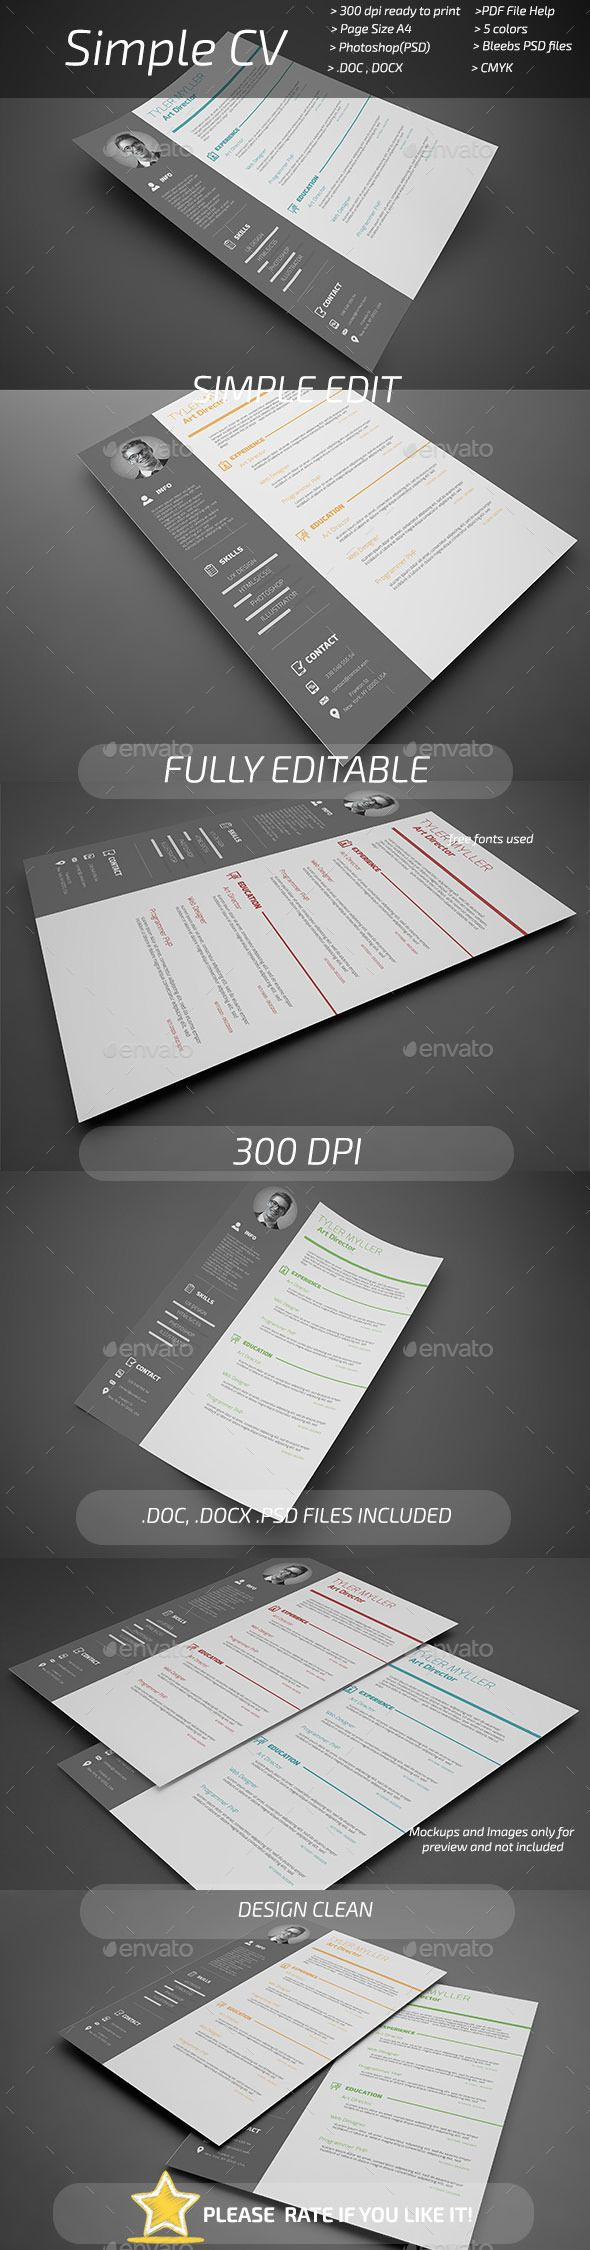 #Simple #CV - Resumes #Stationery Download here: https://graphicriver.net/item/simple-cv/11069364?ref=alena994